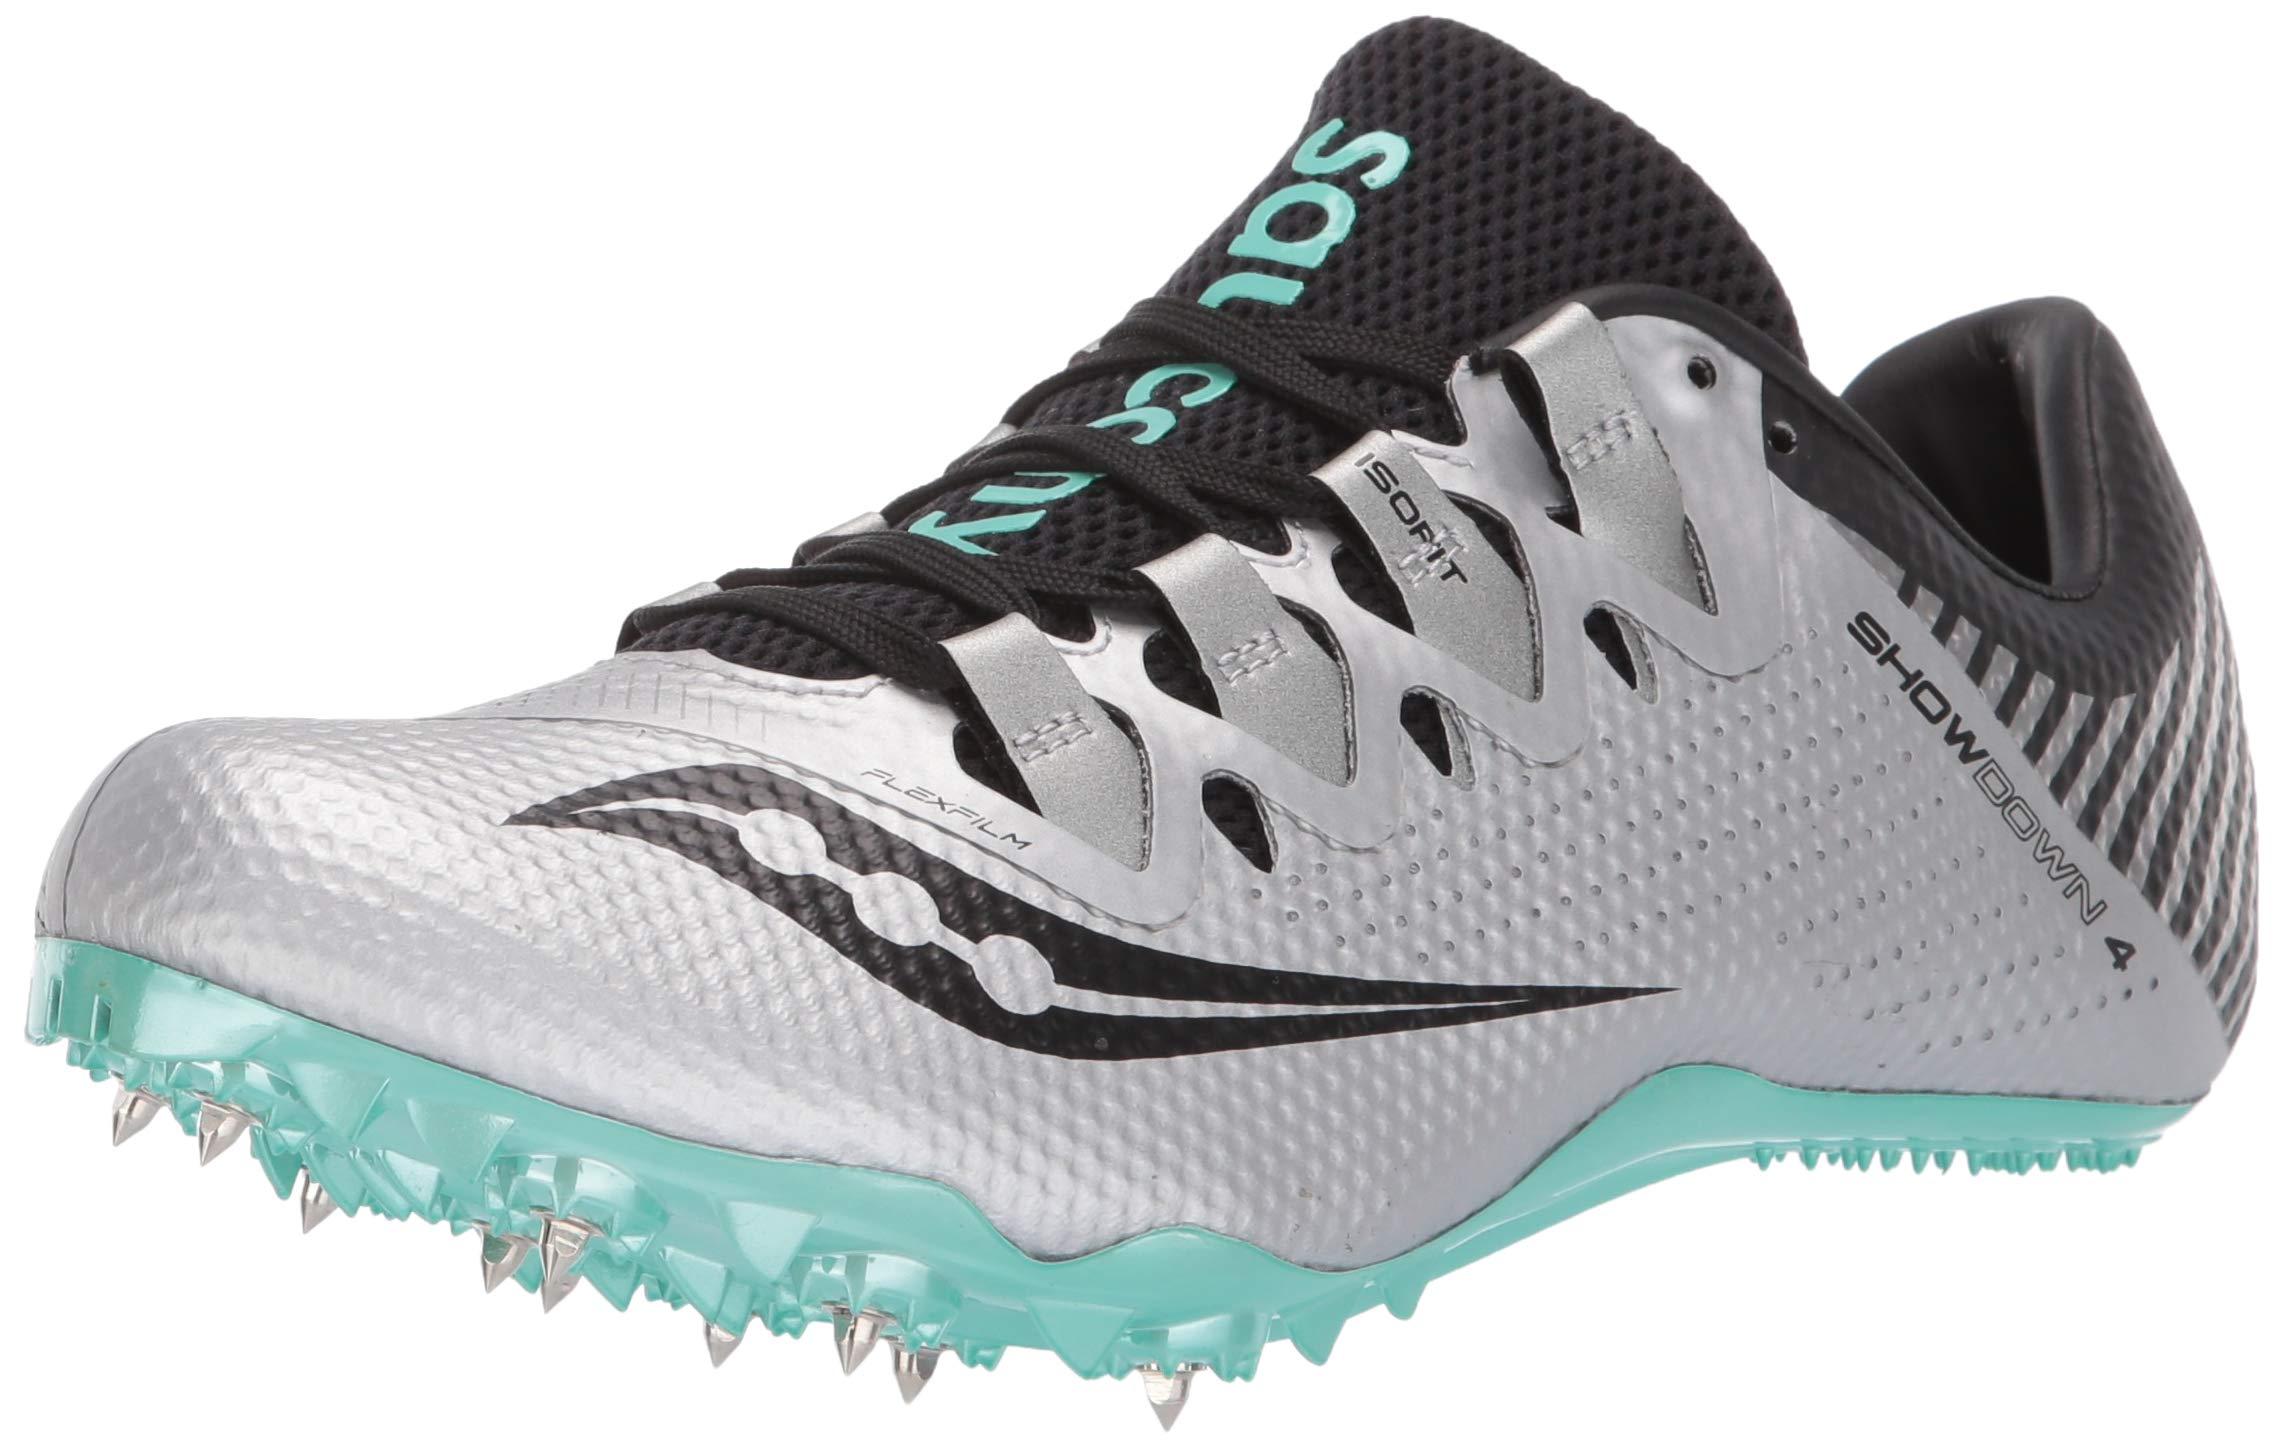 Saucony Women's Showdown 4 Track Shoe Silver/Teal 6 Medium US by Saucony (Image #1)